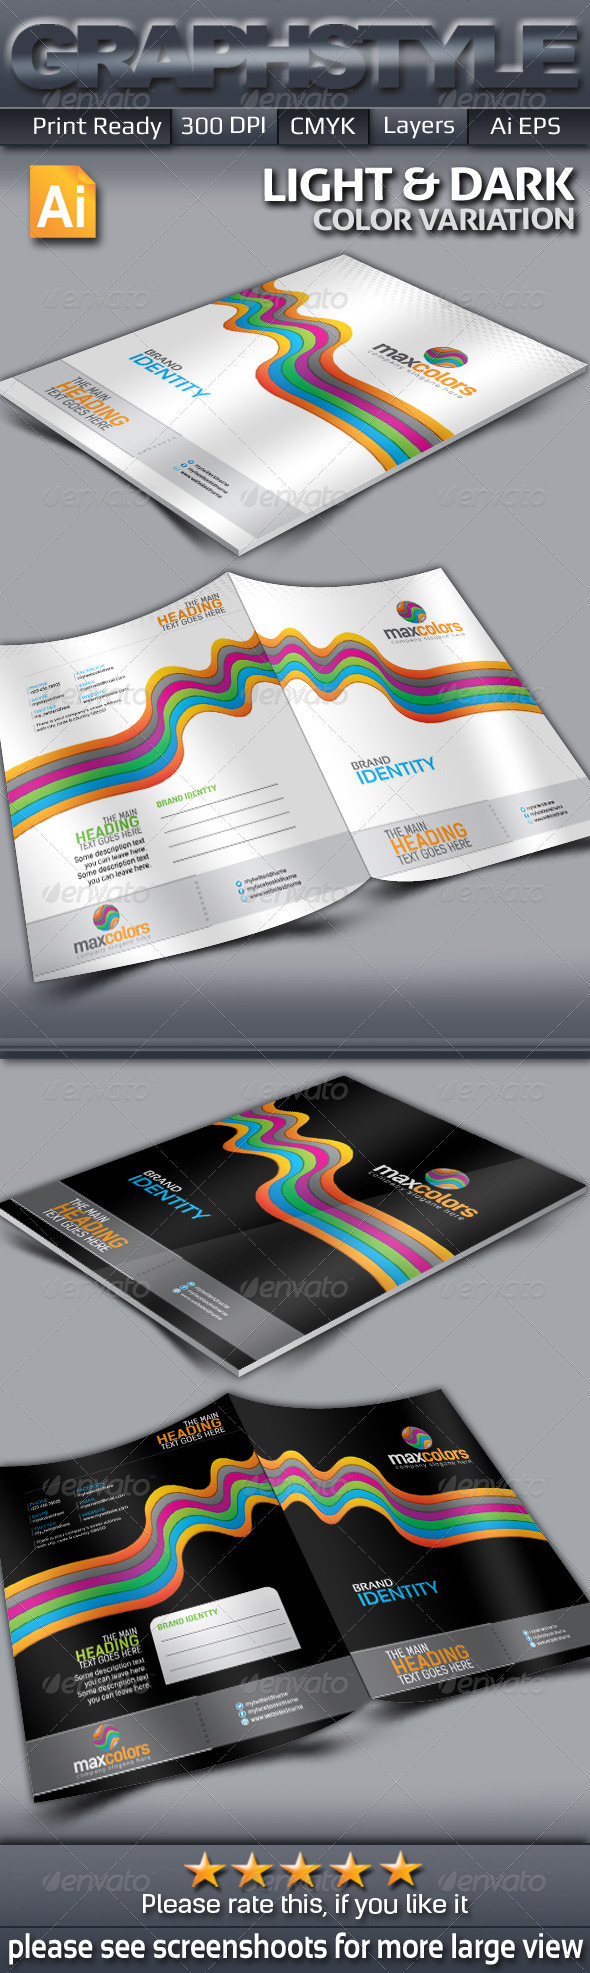 maxcolors Presentation Folder Templates